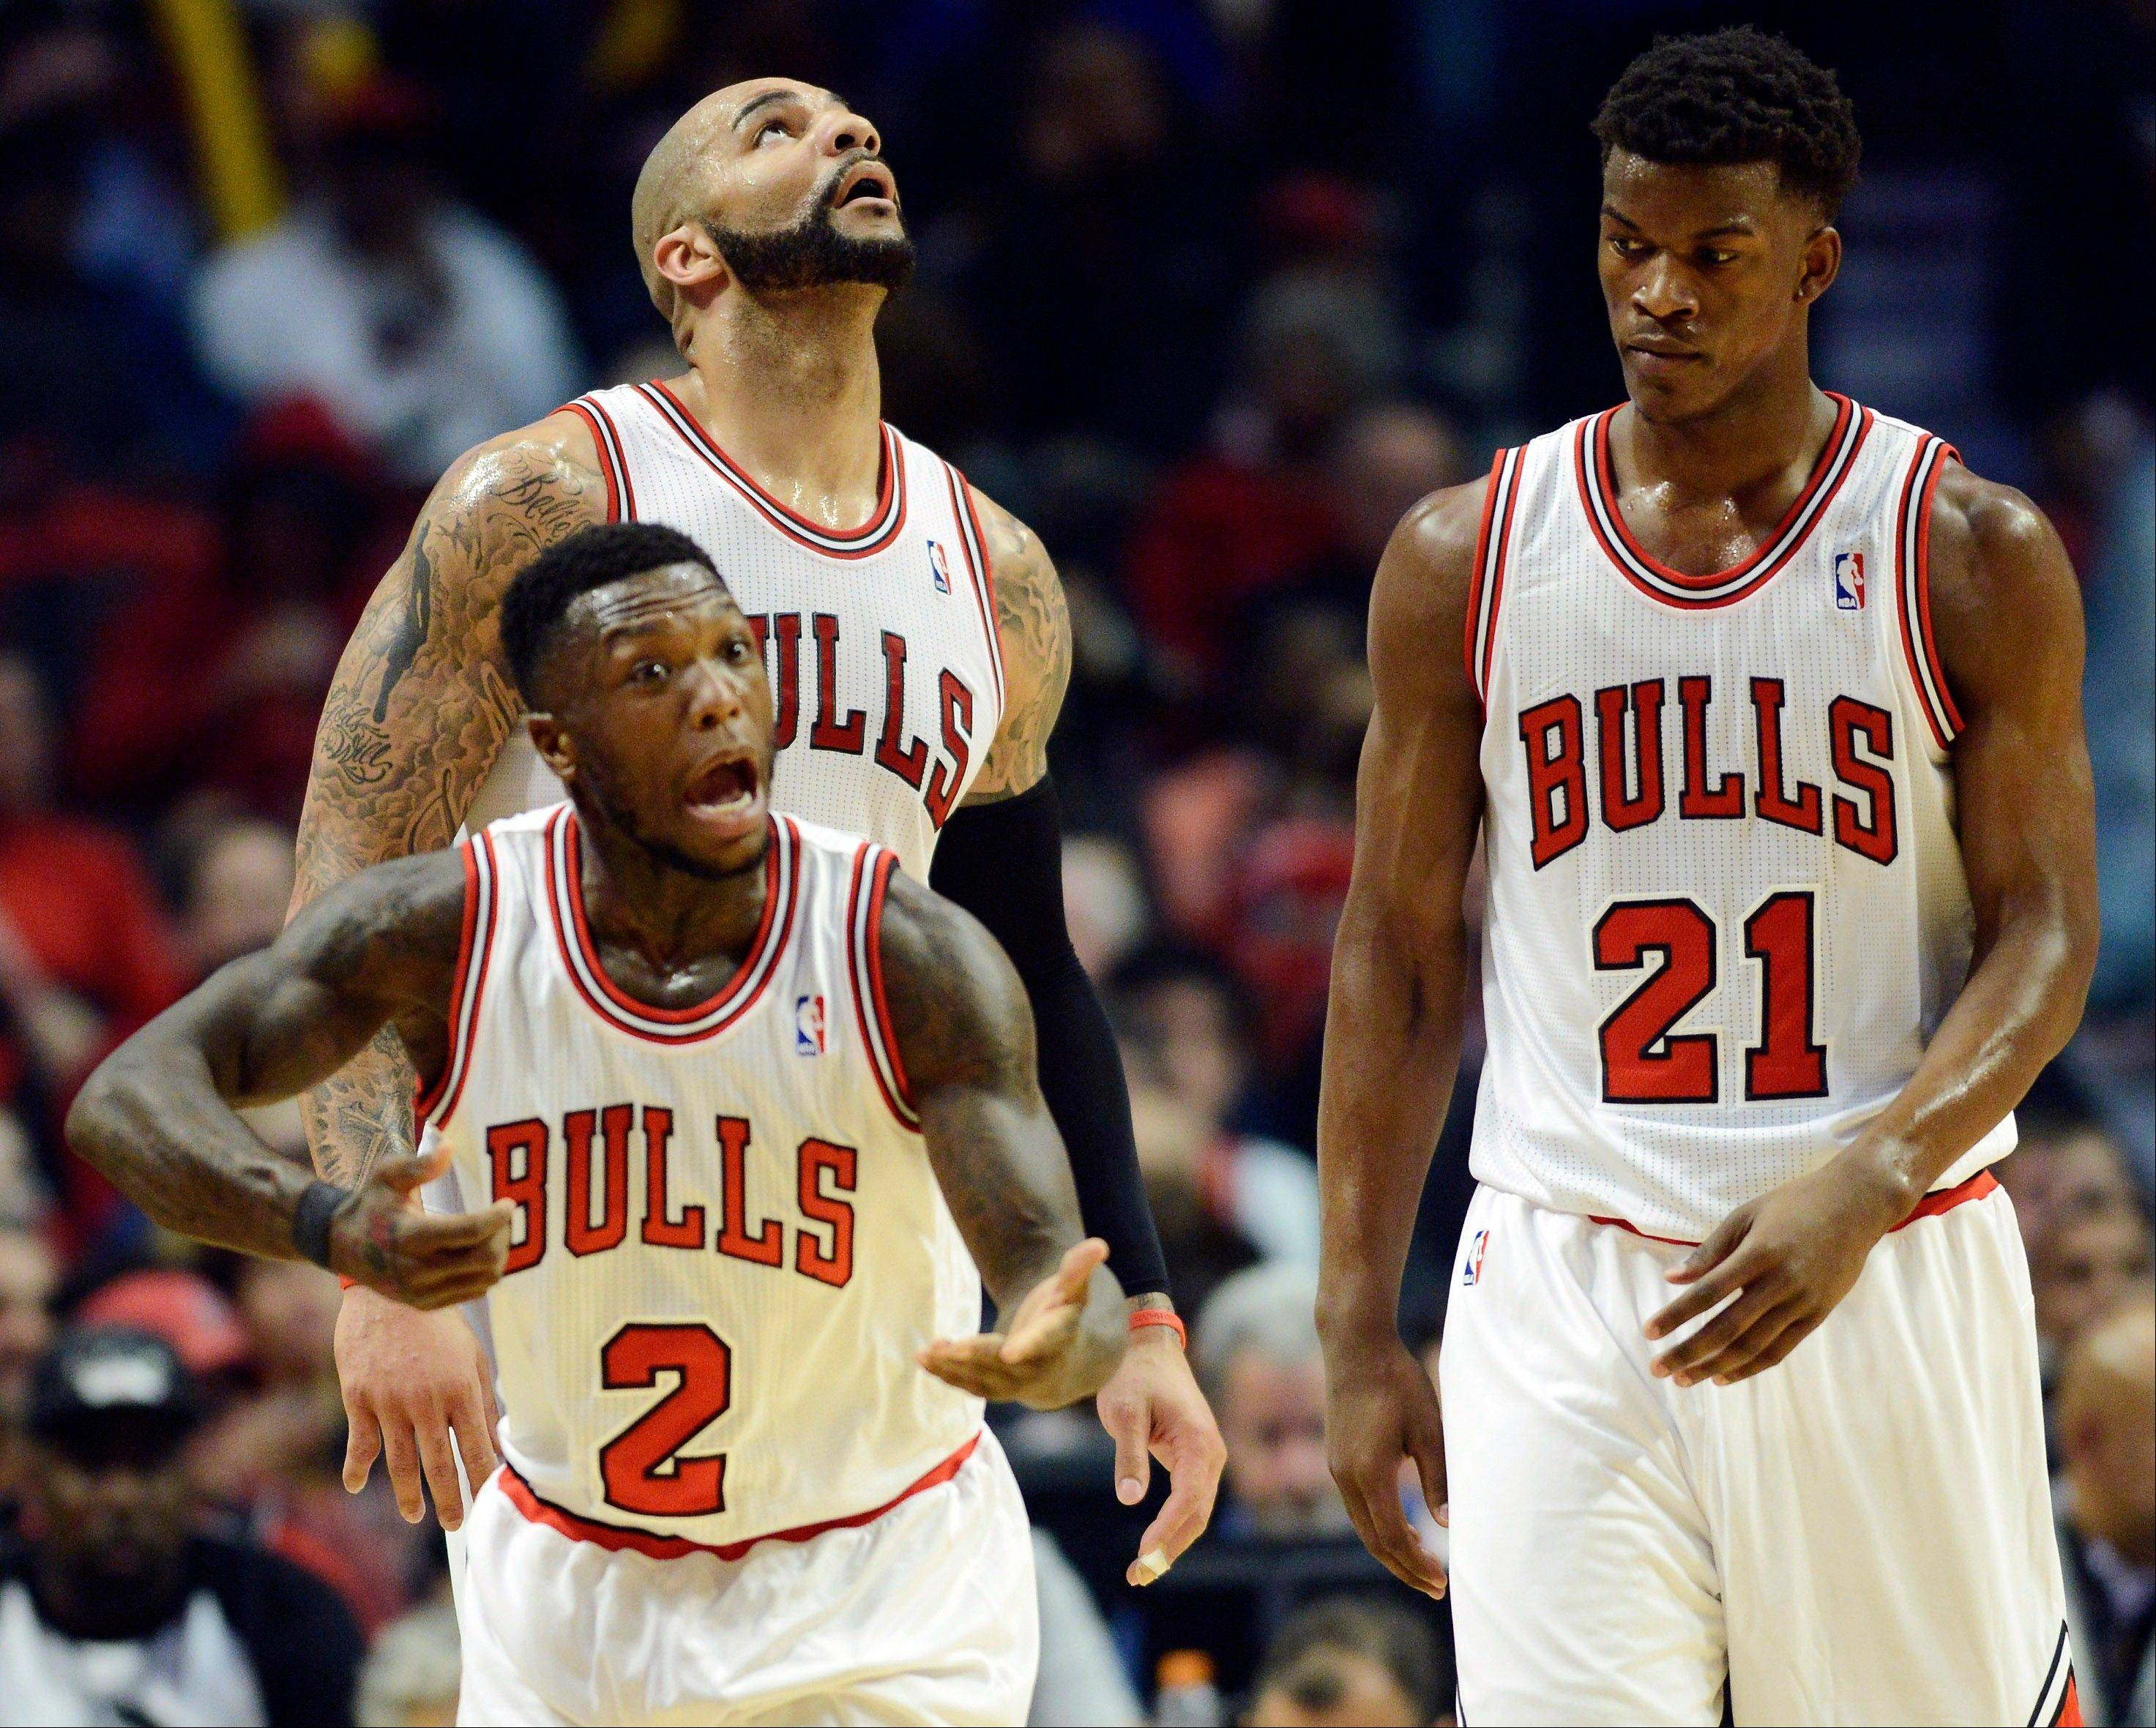 The Bulls' Nate Robinson (2) reacts after drawing contact from a Brooklyn Nets player as Carlos Boozer, rear left, and Jimmy Butler look on during Game 6 of their first-round NBA basketball playoff series at the United Center. The Nets won 95-92.